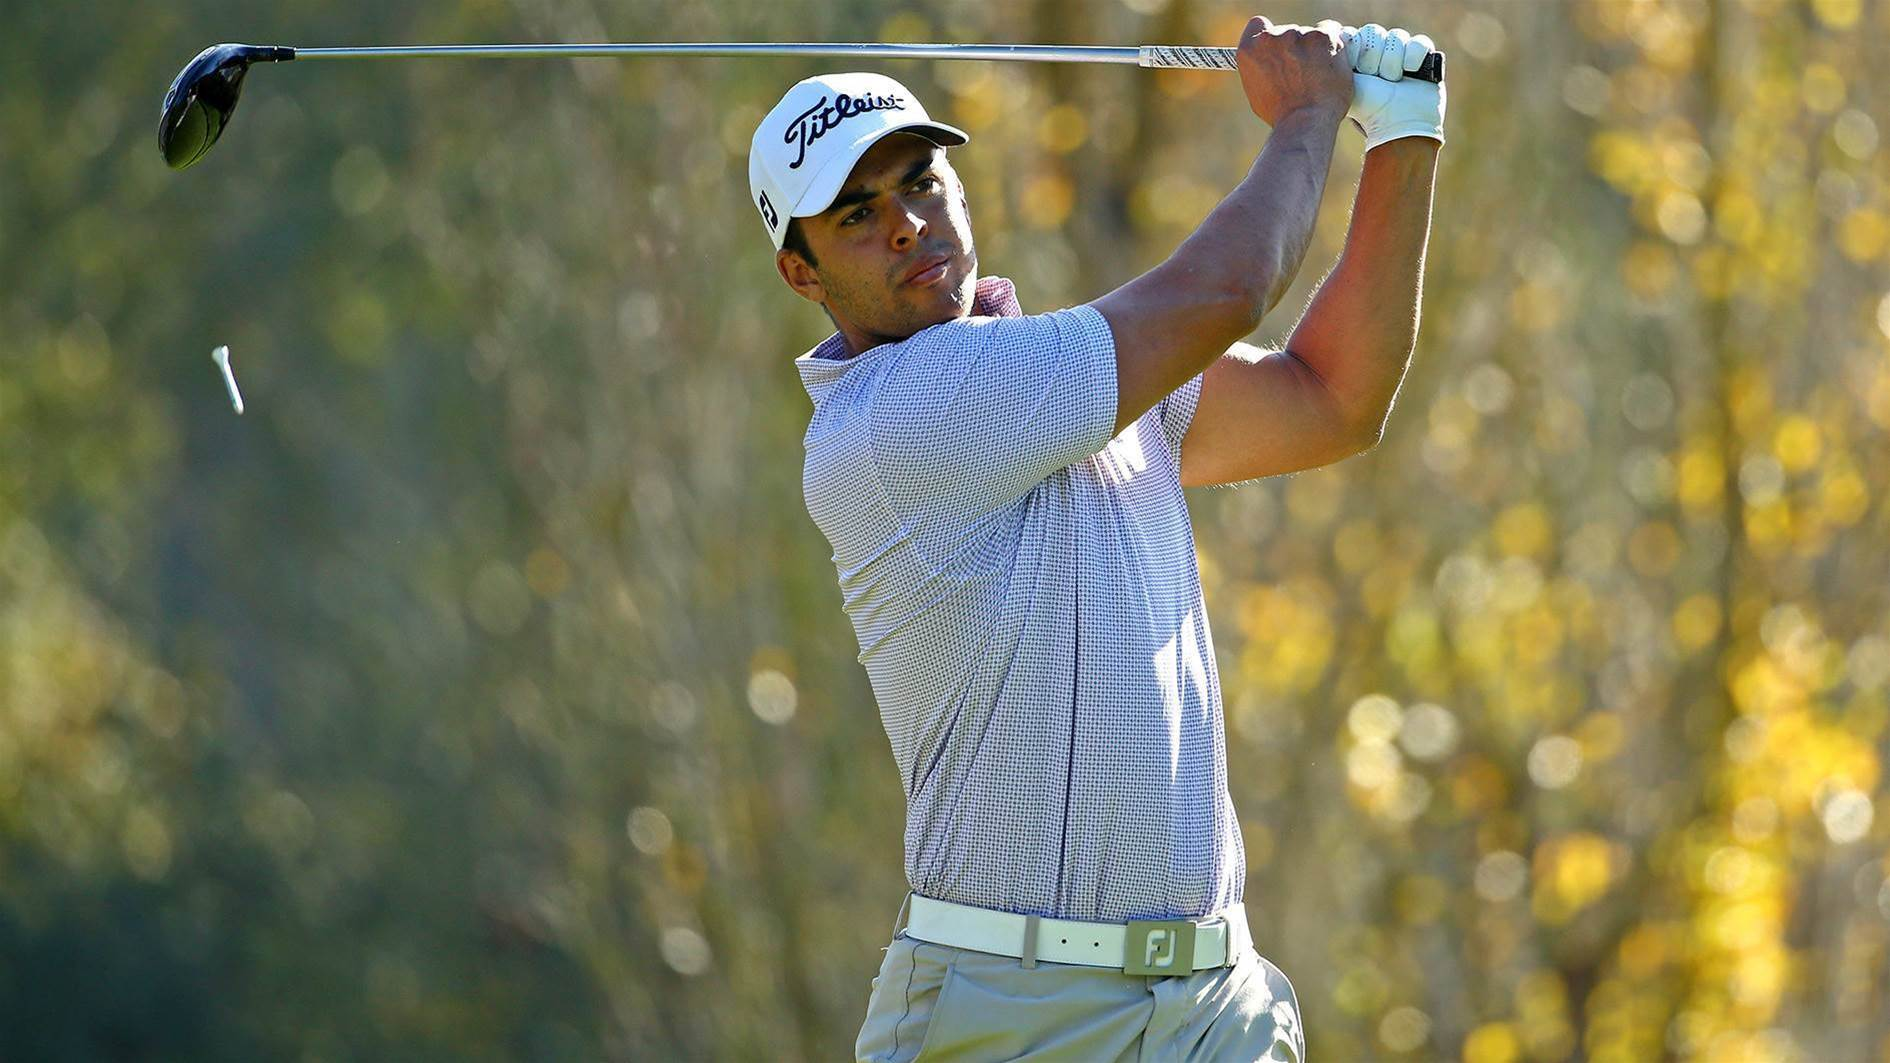 Papadatos keeps his cool to win WA PGA